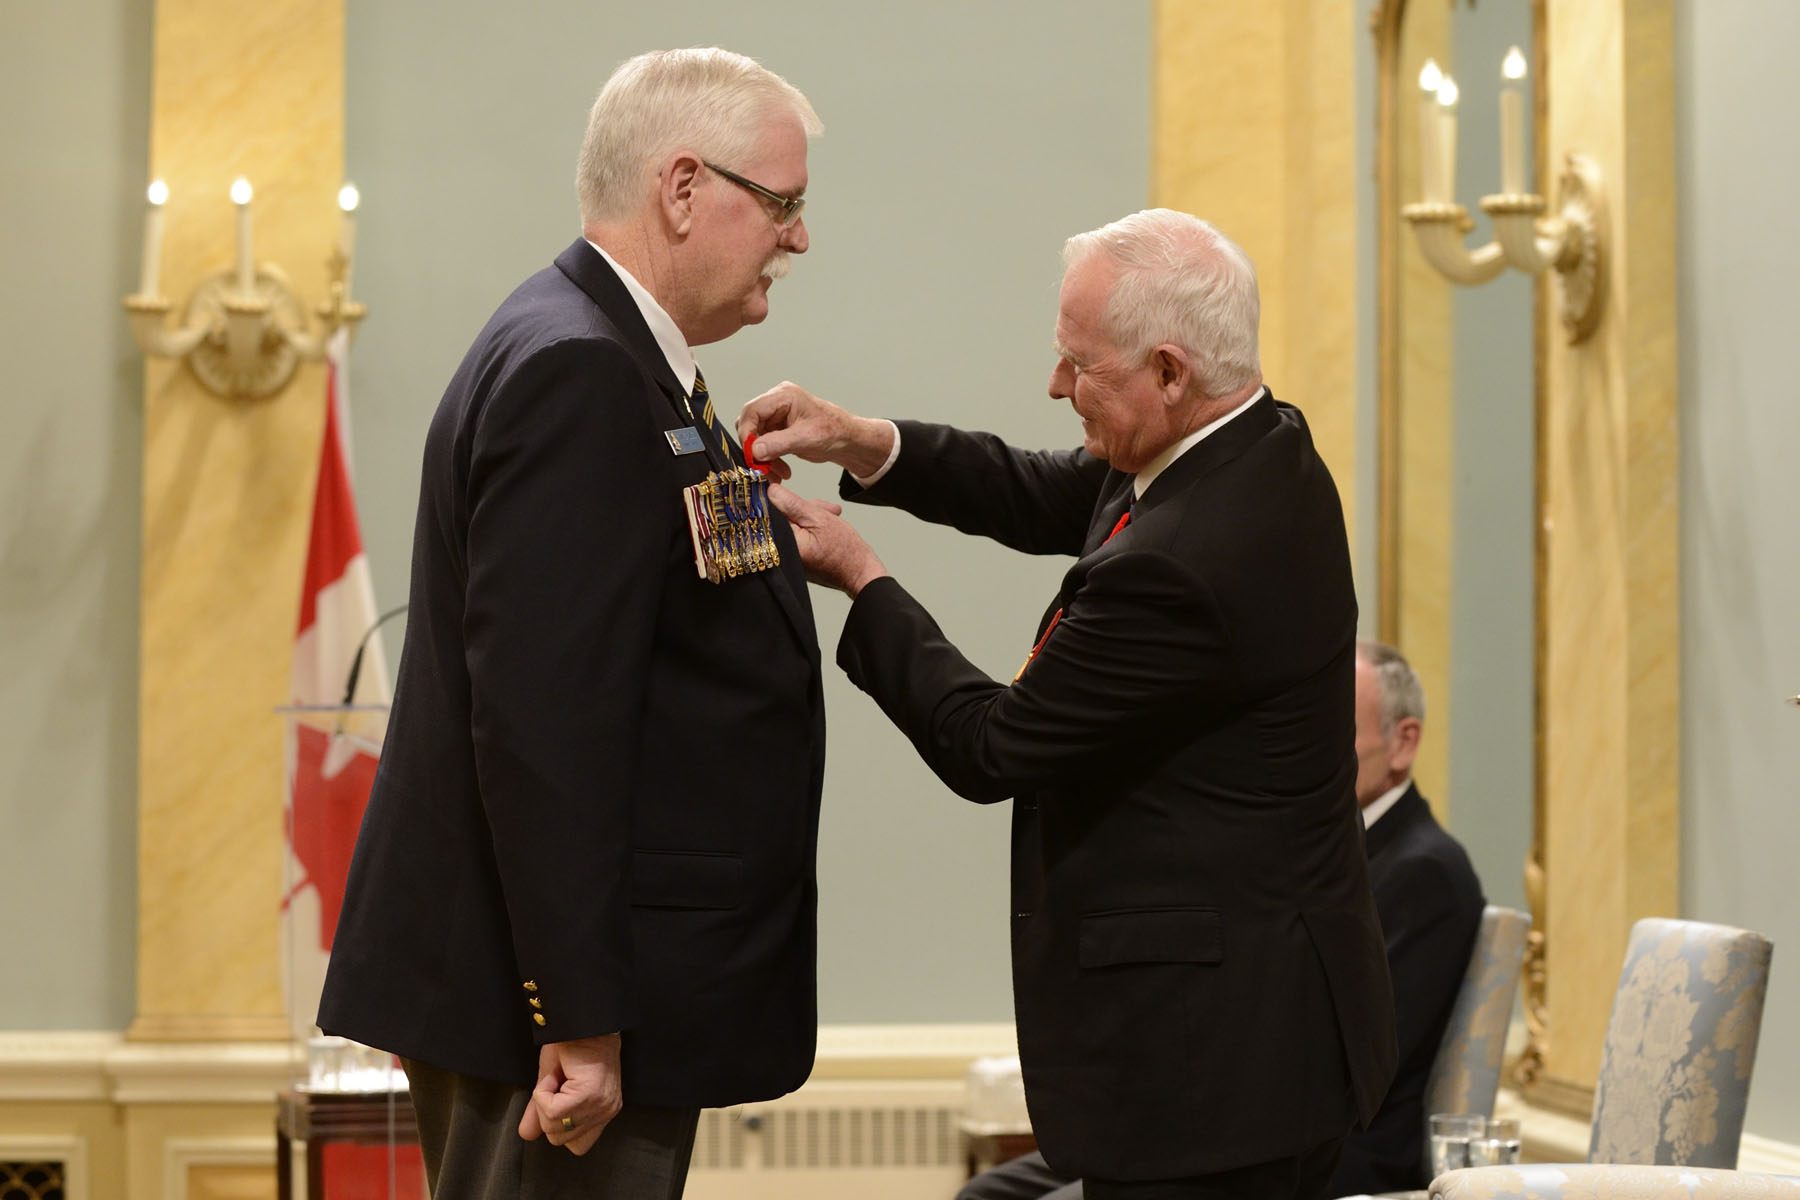 The Governor General presented a poppy on Mr. Eagles.